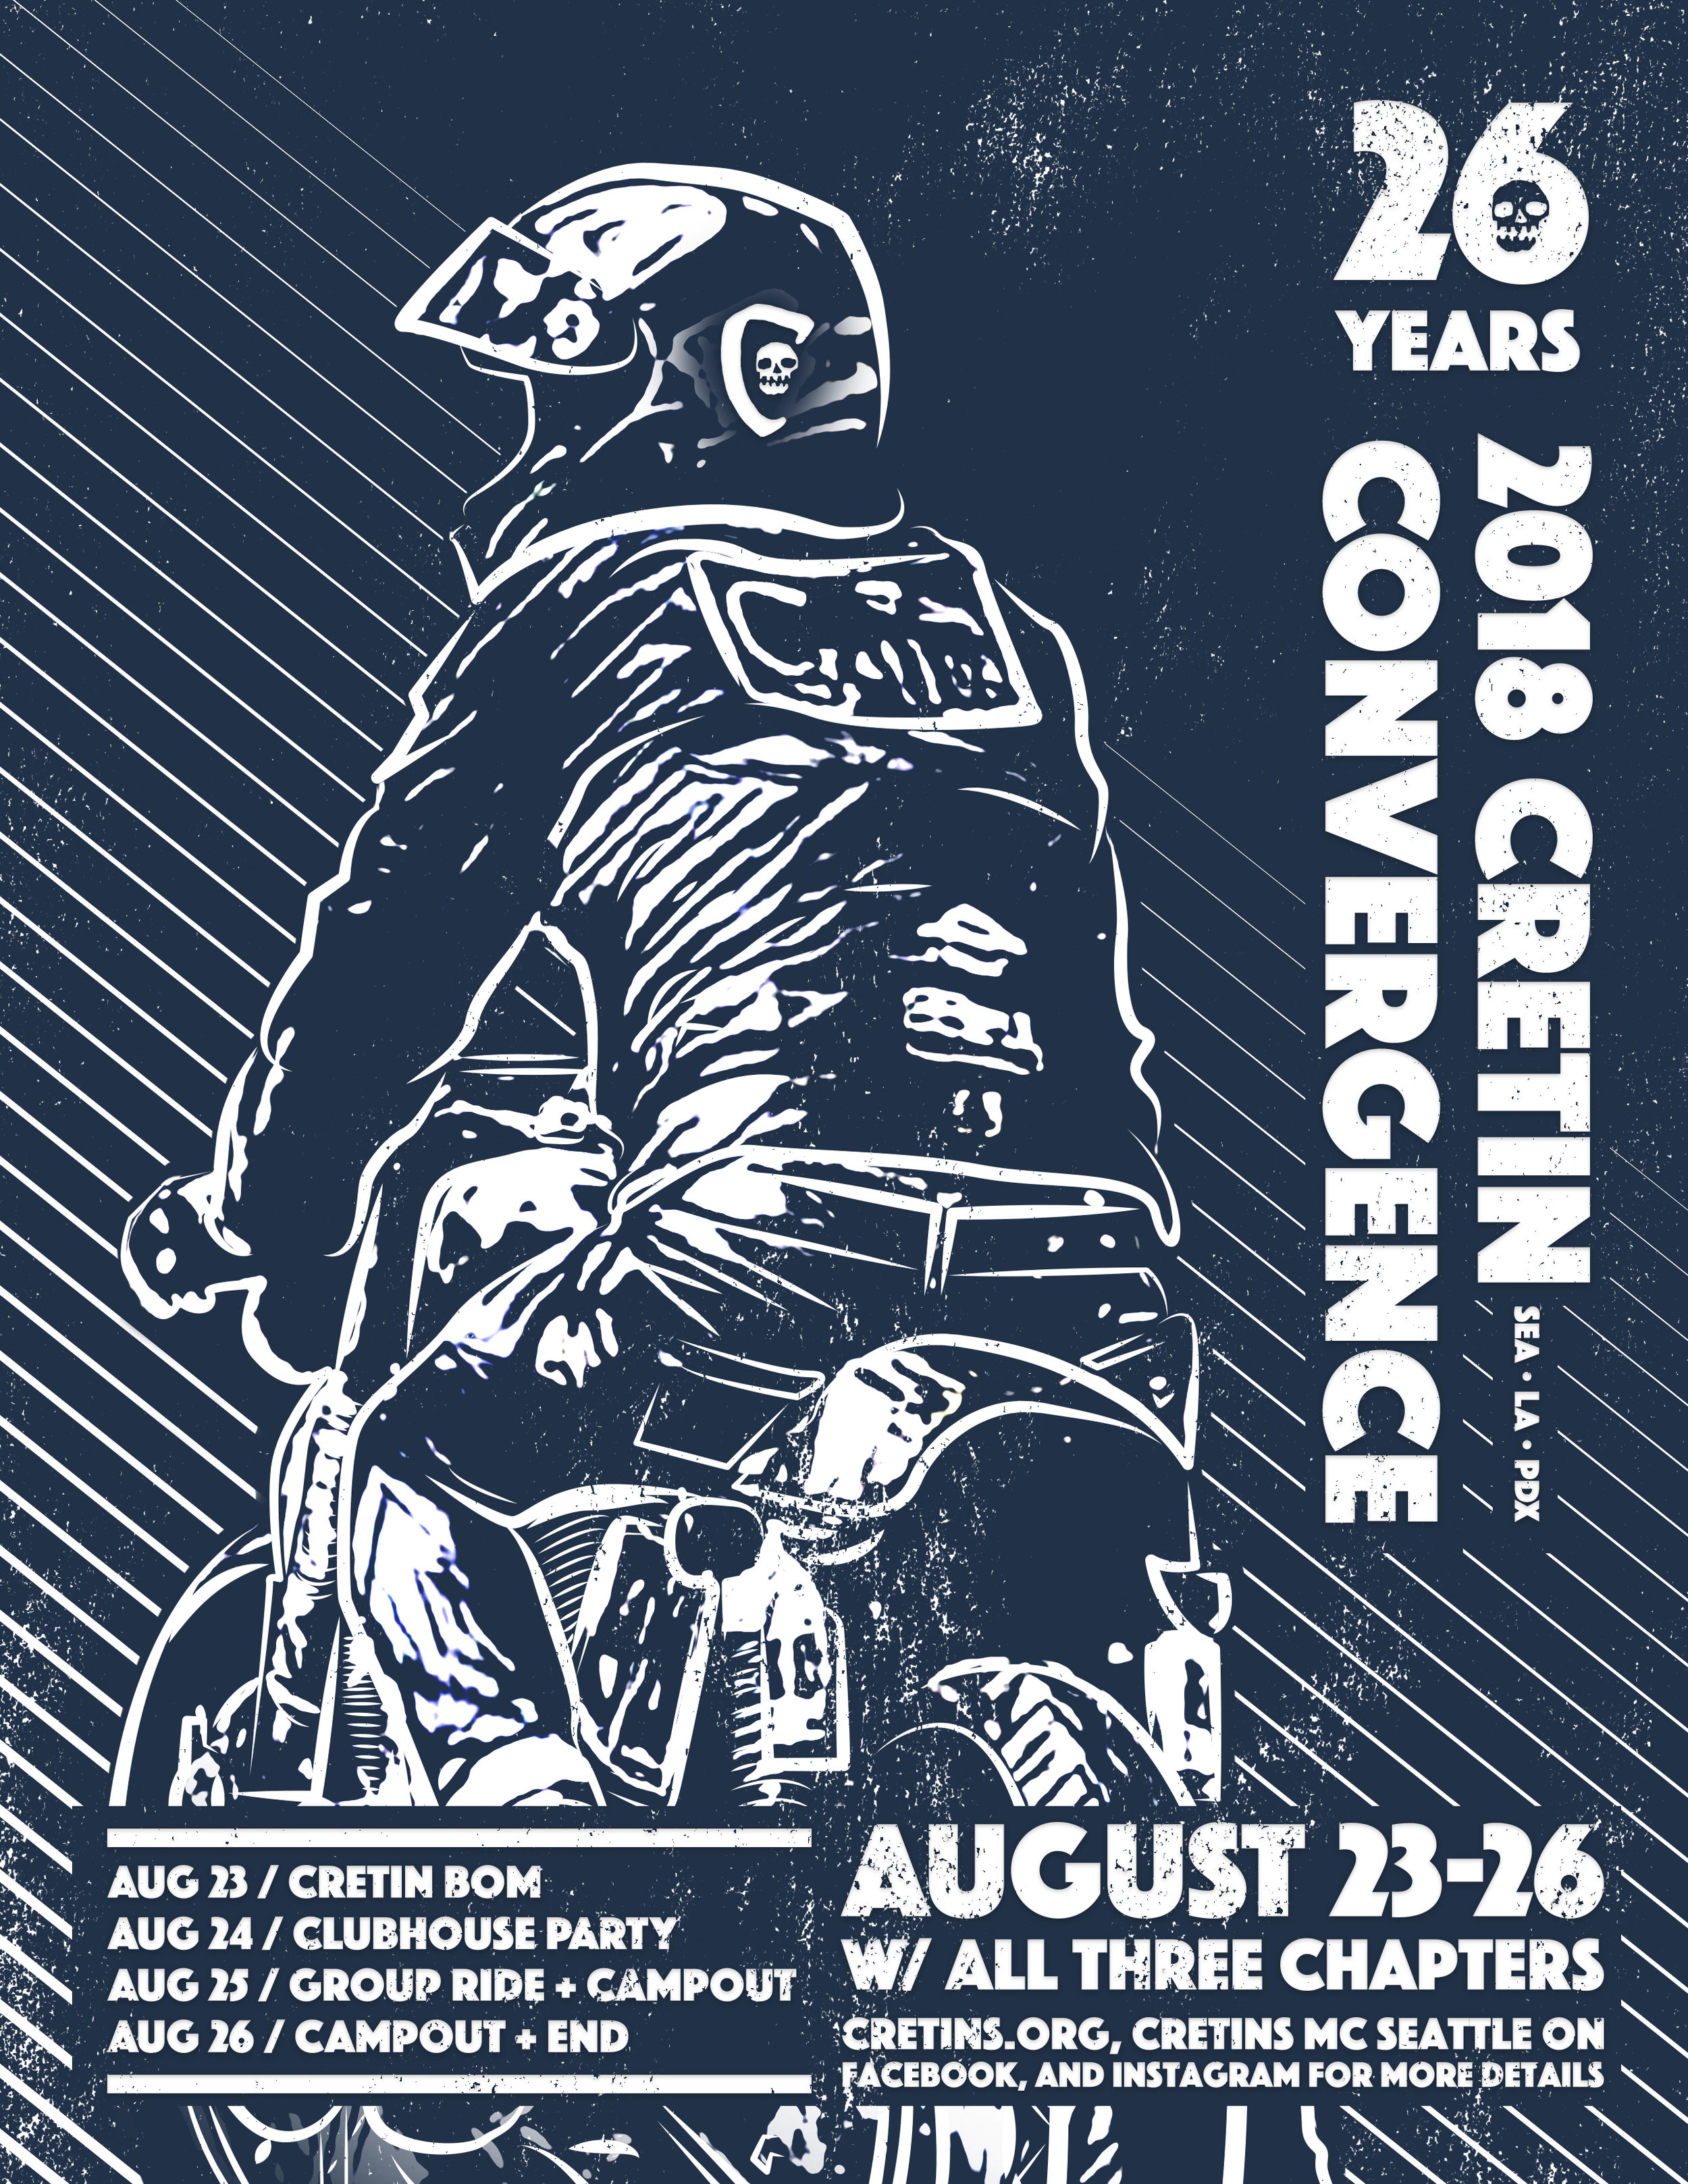 Upcoming Events - 2018 CRETINS CONVERGENCETHURS-SUN, AUG 23-26AUG 23: CRETIN BOM WITH ALL THREE CHAPTERSAUG 24: CLUBHOUSE PARTYAUG 25: GROUP RIDE THROUGH THE ISLANDSAUG 26: GROUP RIDES AND GO HOMEALL WELCOME TO JOIN IN WITH MEMBERS FROM ALL THREE CHAPTERS AT ANY OF THE EVENTS. MORE DETAILS AVAILABLE VIA FACEBOOK AND INSTAGRAM. fLYING FIFTEEN mc FELONY FLAT TRACKING BBQ/MINIBIKES/BANDSSAT, SEP 8 NOON72ND AND FIReVENT DETAILS HERE